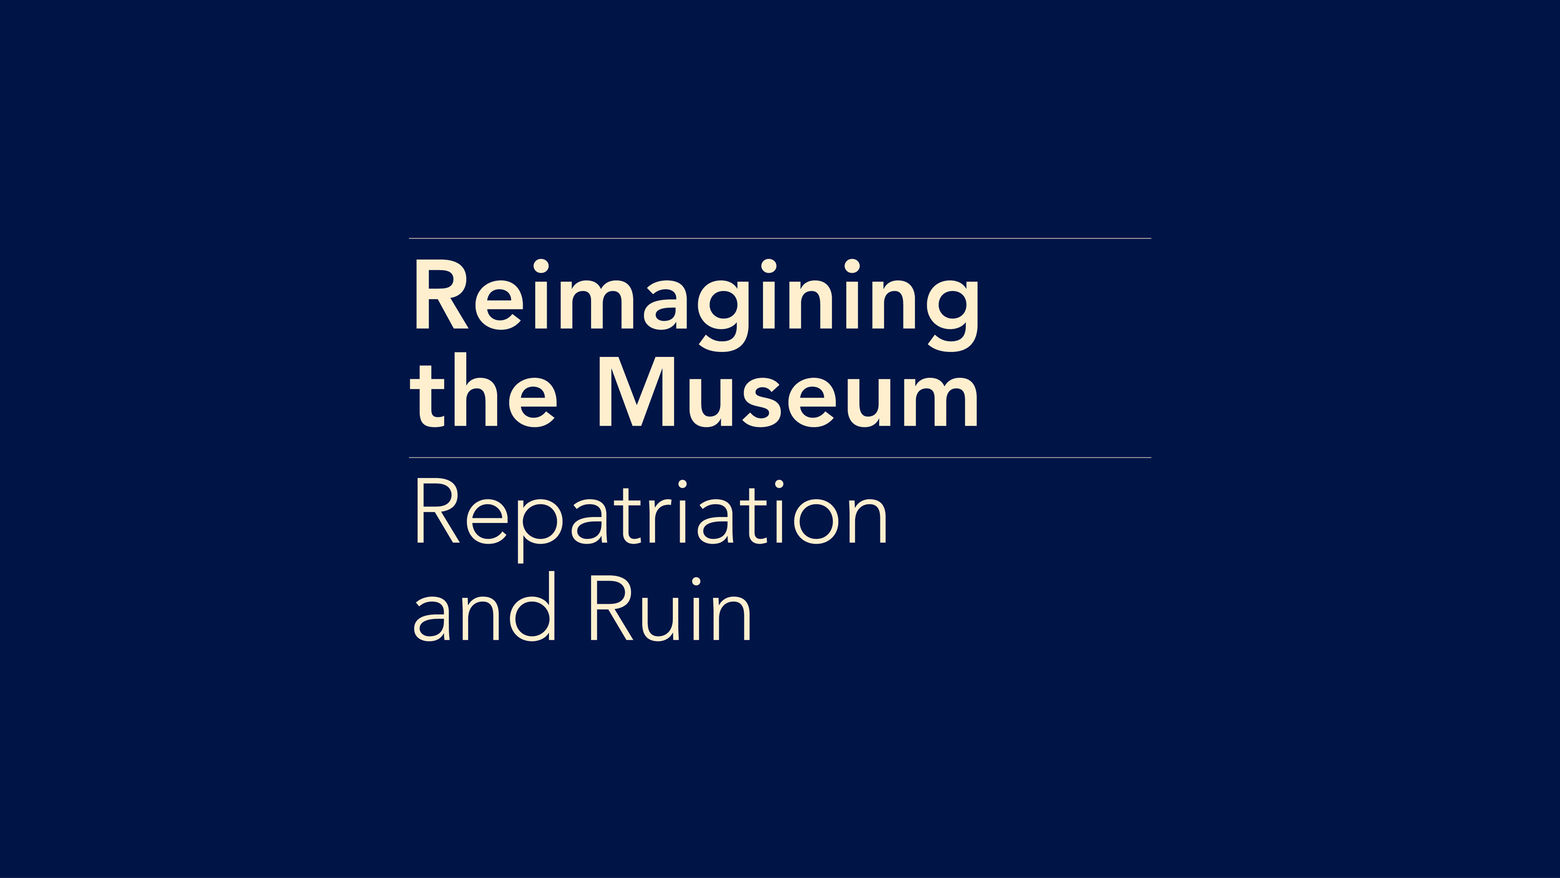 Repatriation and Ruin